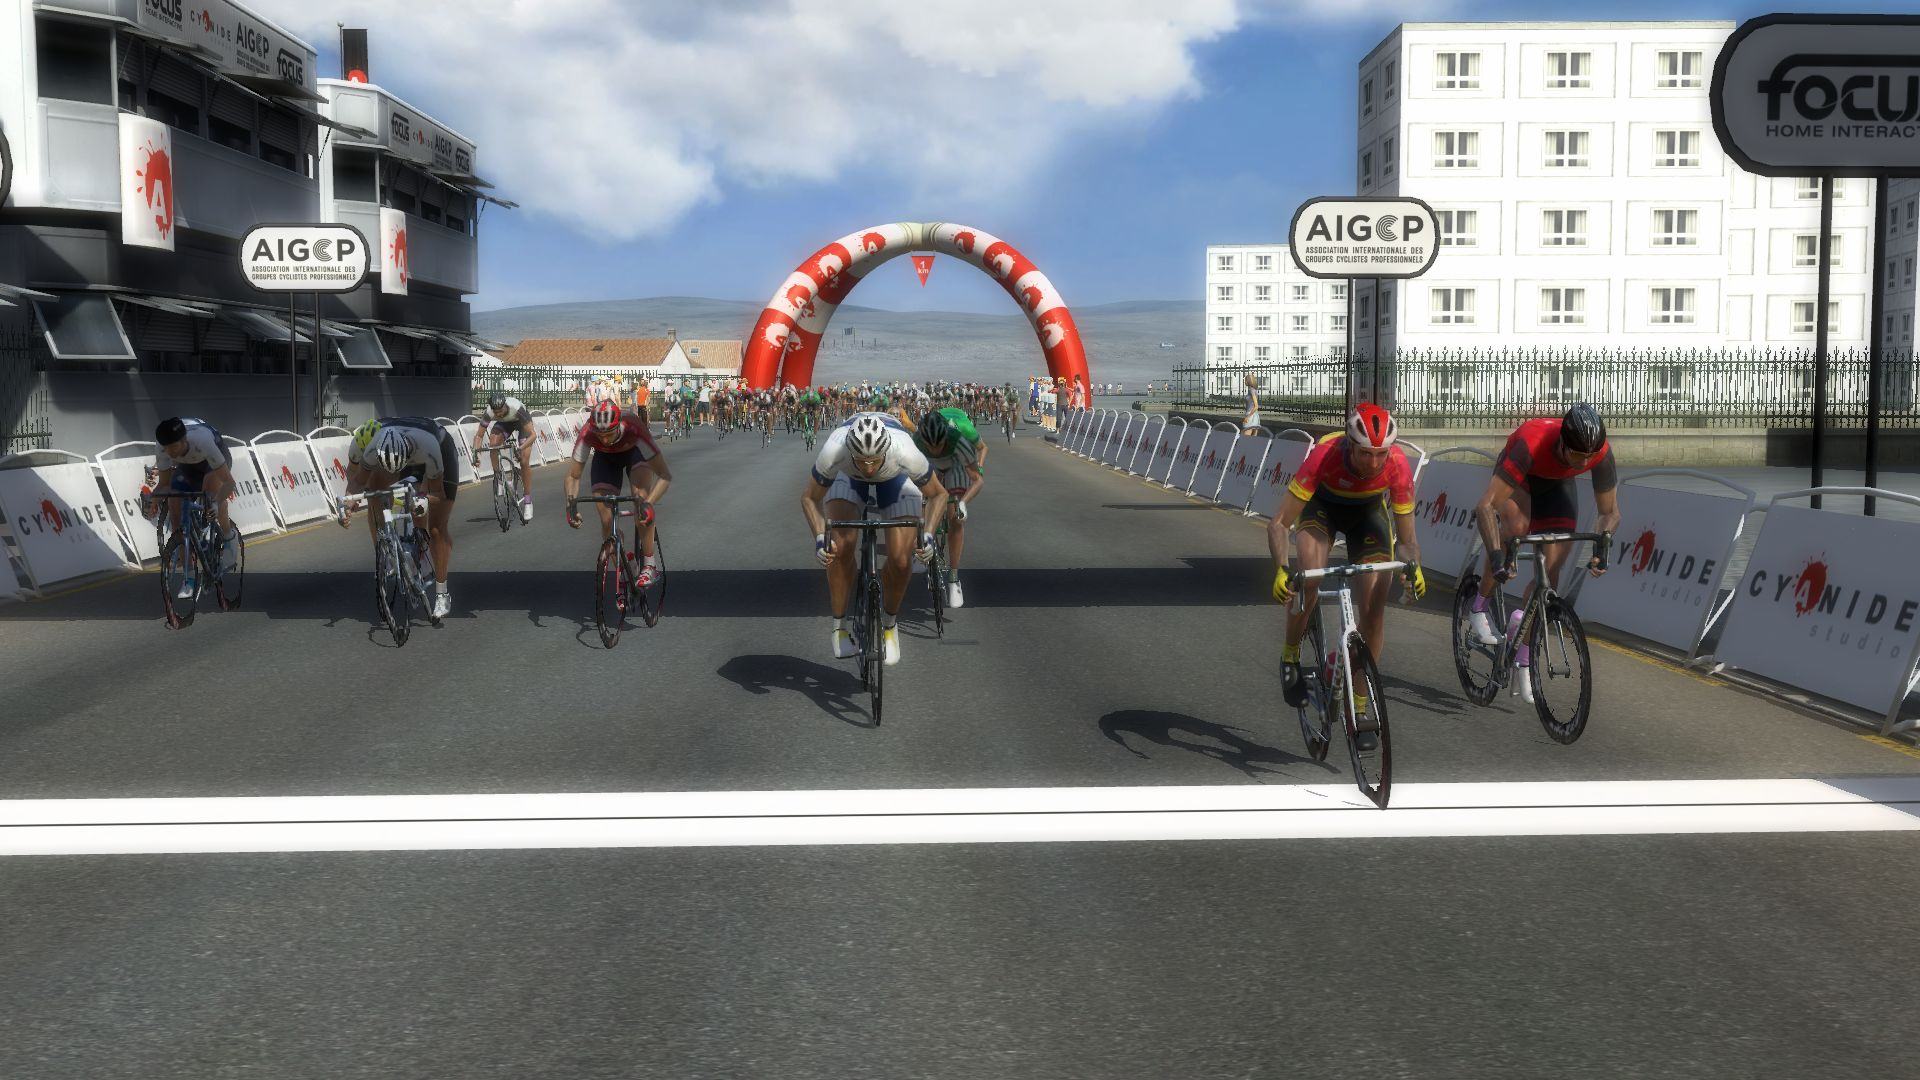 pcmdaily.com/images/mg/2019/Races/C2HC/Eritrea/TOES1%2022.jpg